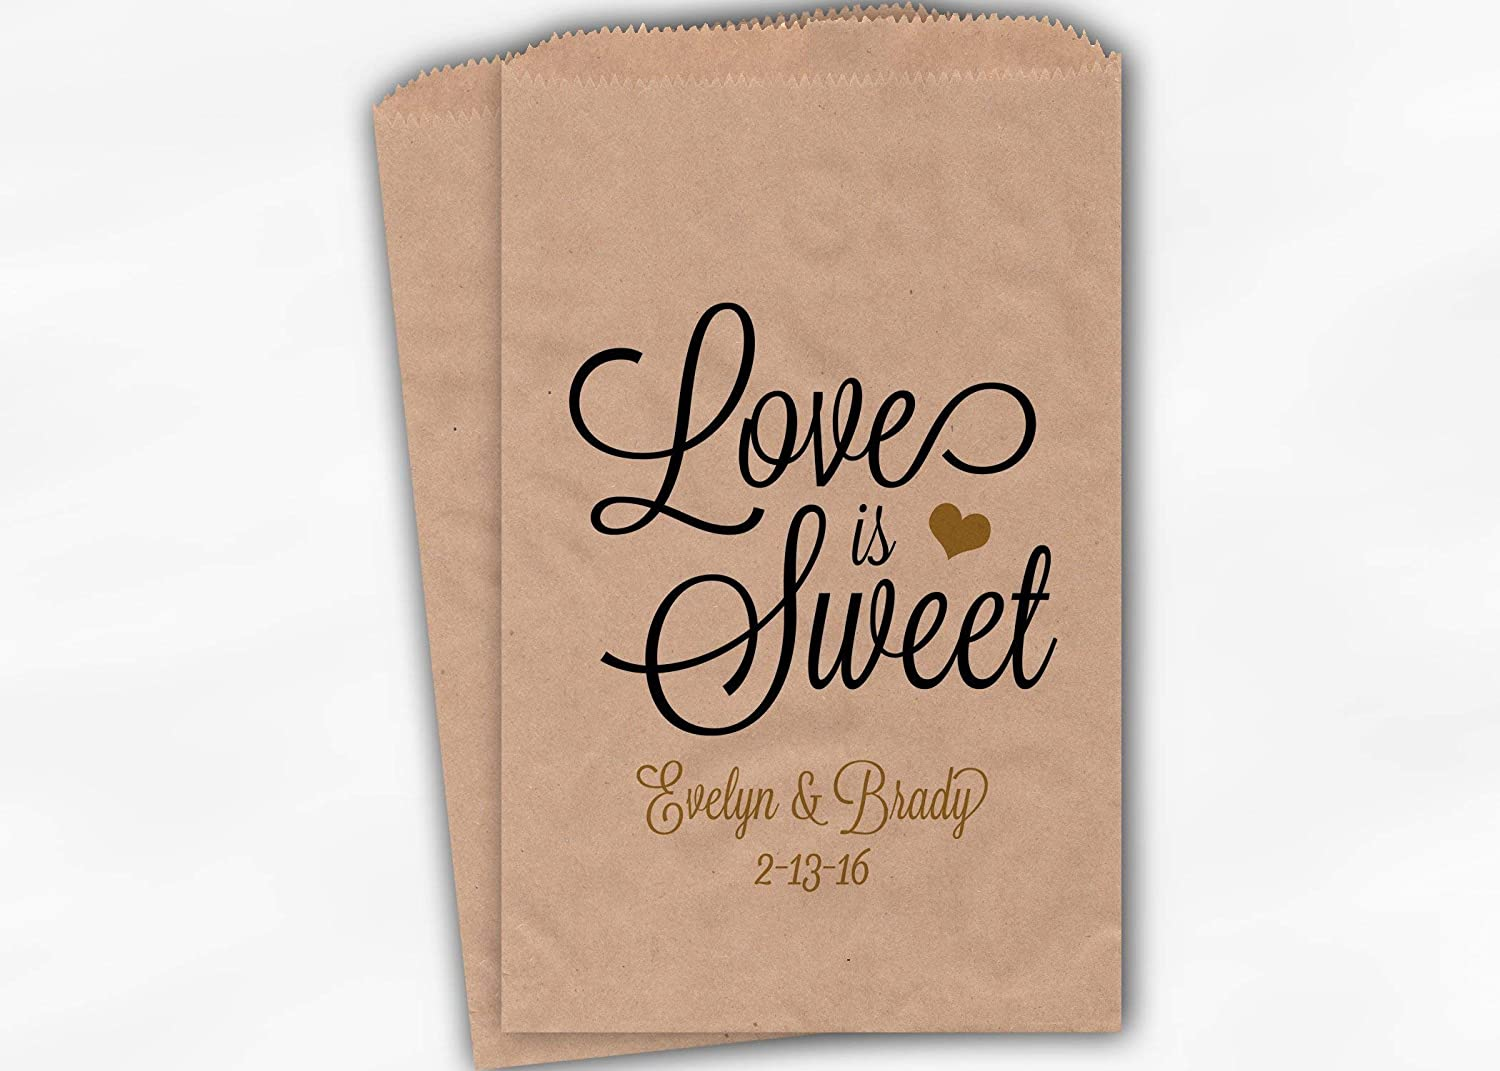 amazon com love is sweet wedding favor bags for candy buffet in rh amazon com personalized paper bags for candy buffet personalized paper bags for candy buffet